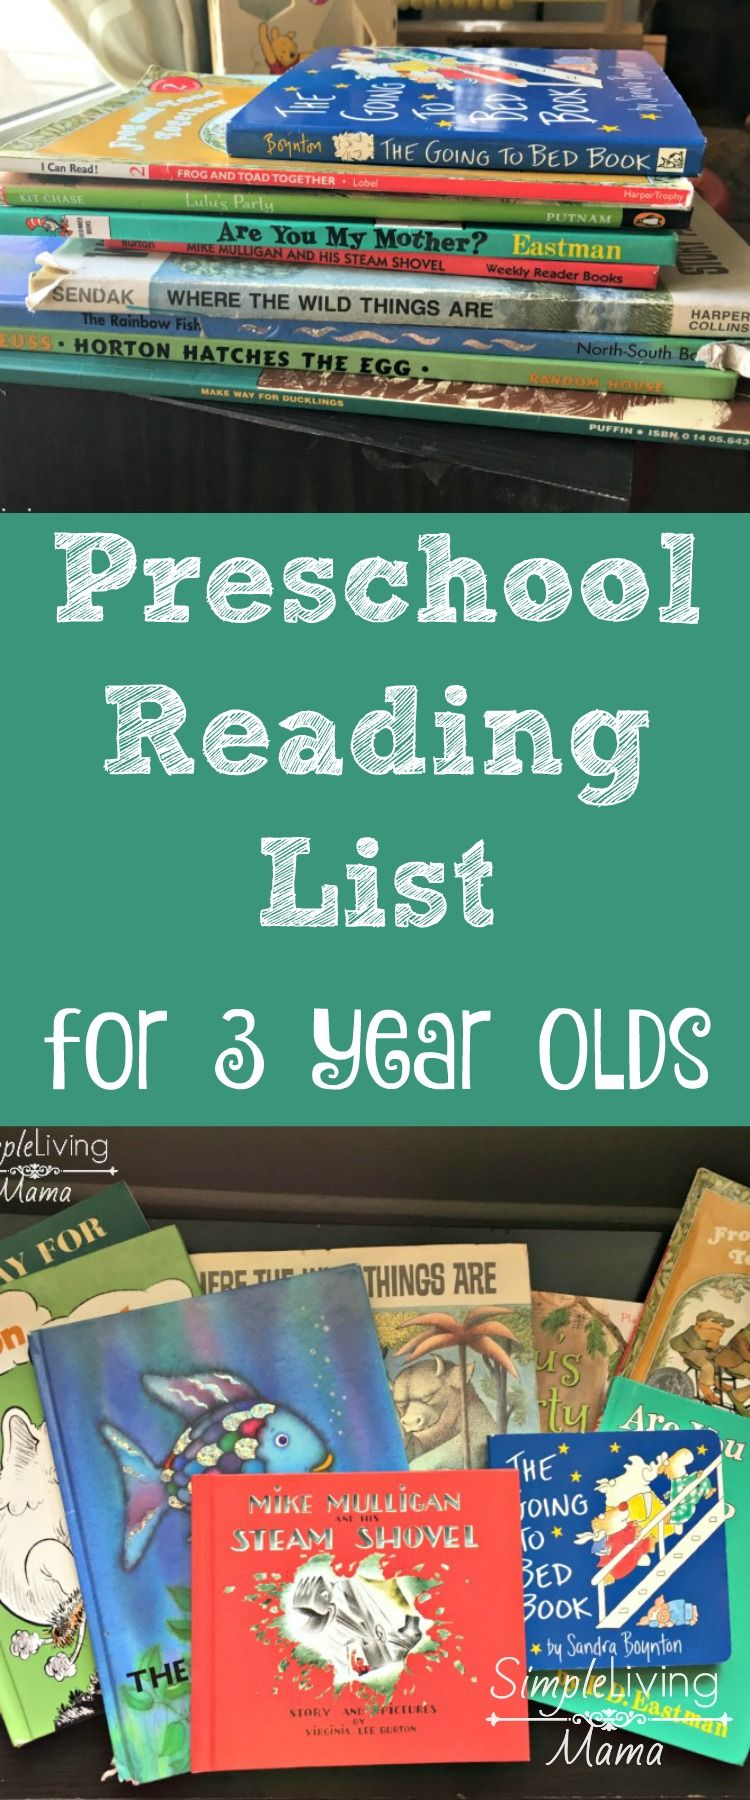 Preschool Book List for 3 Year Olds | SimpleLivingMama.com ...